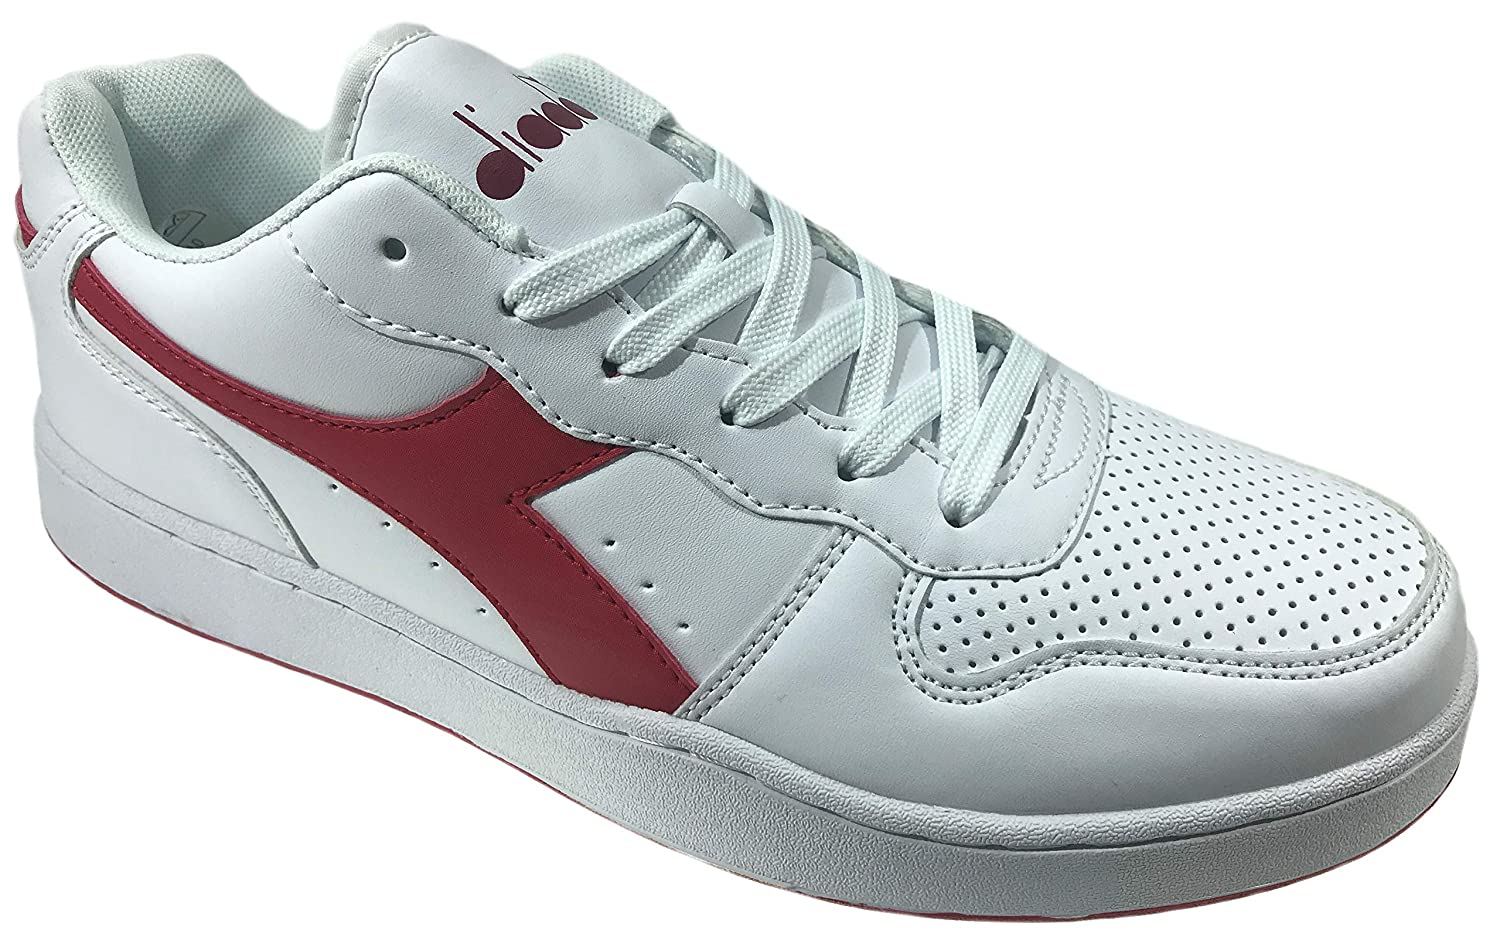 db0c08ee59 Diadora Men's Playground Gymnastics Shoes: Amazon.co.uk: Shoes & Bags